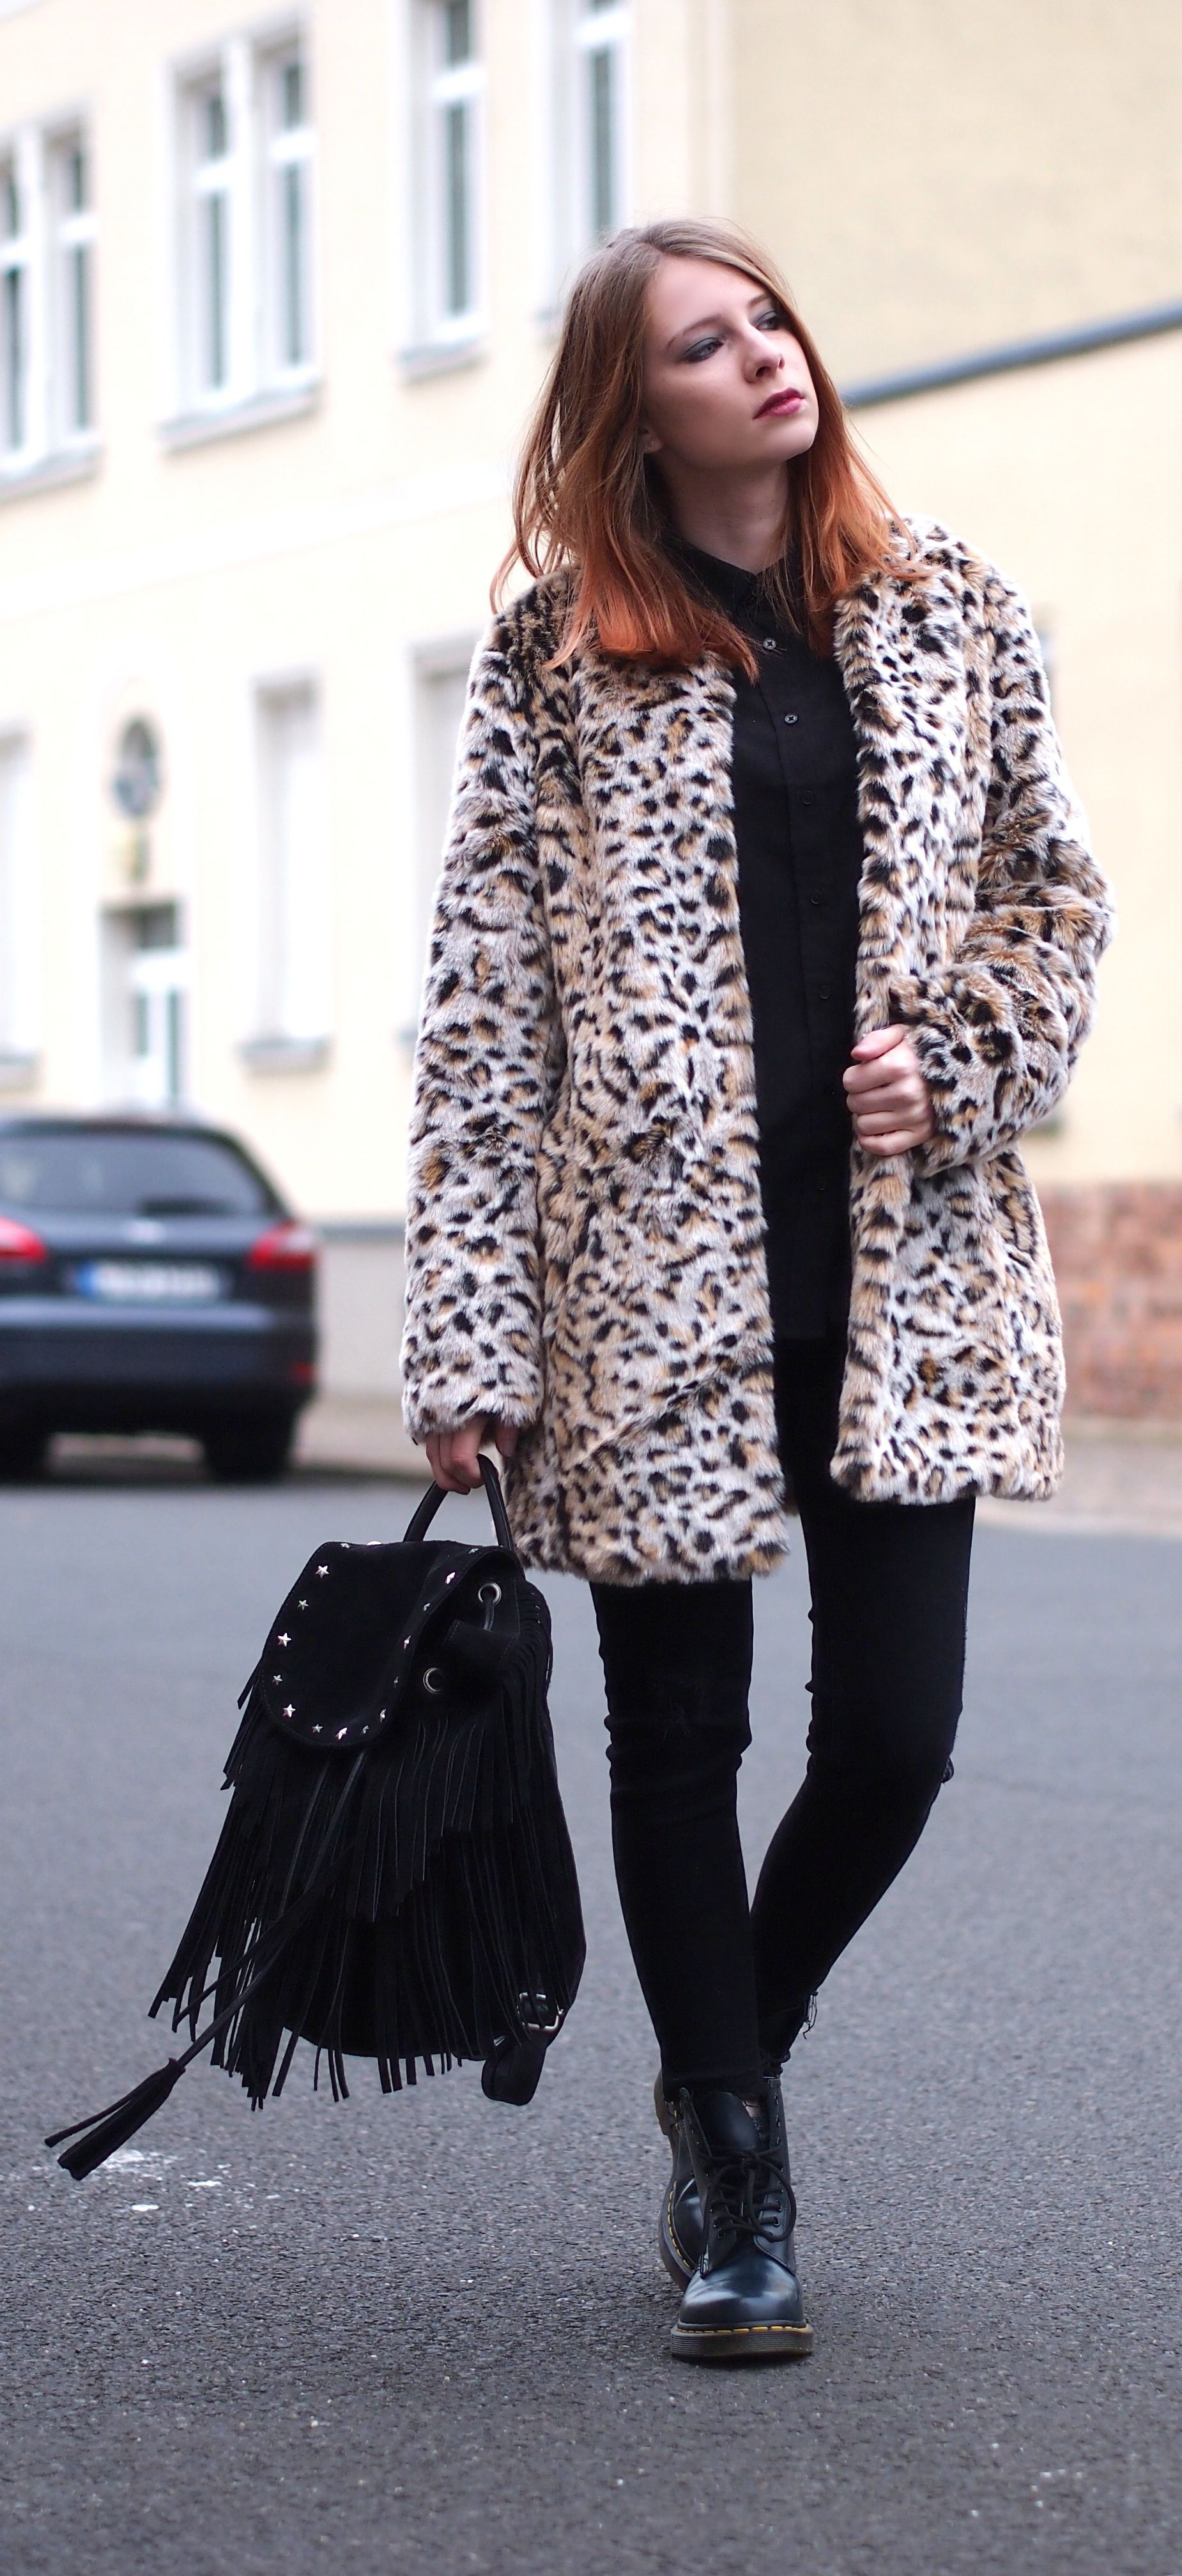 3a37d8135c82 Winter Coat outfits 2019 | Coat outfits in 2019 | Winter coat ...